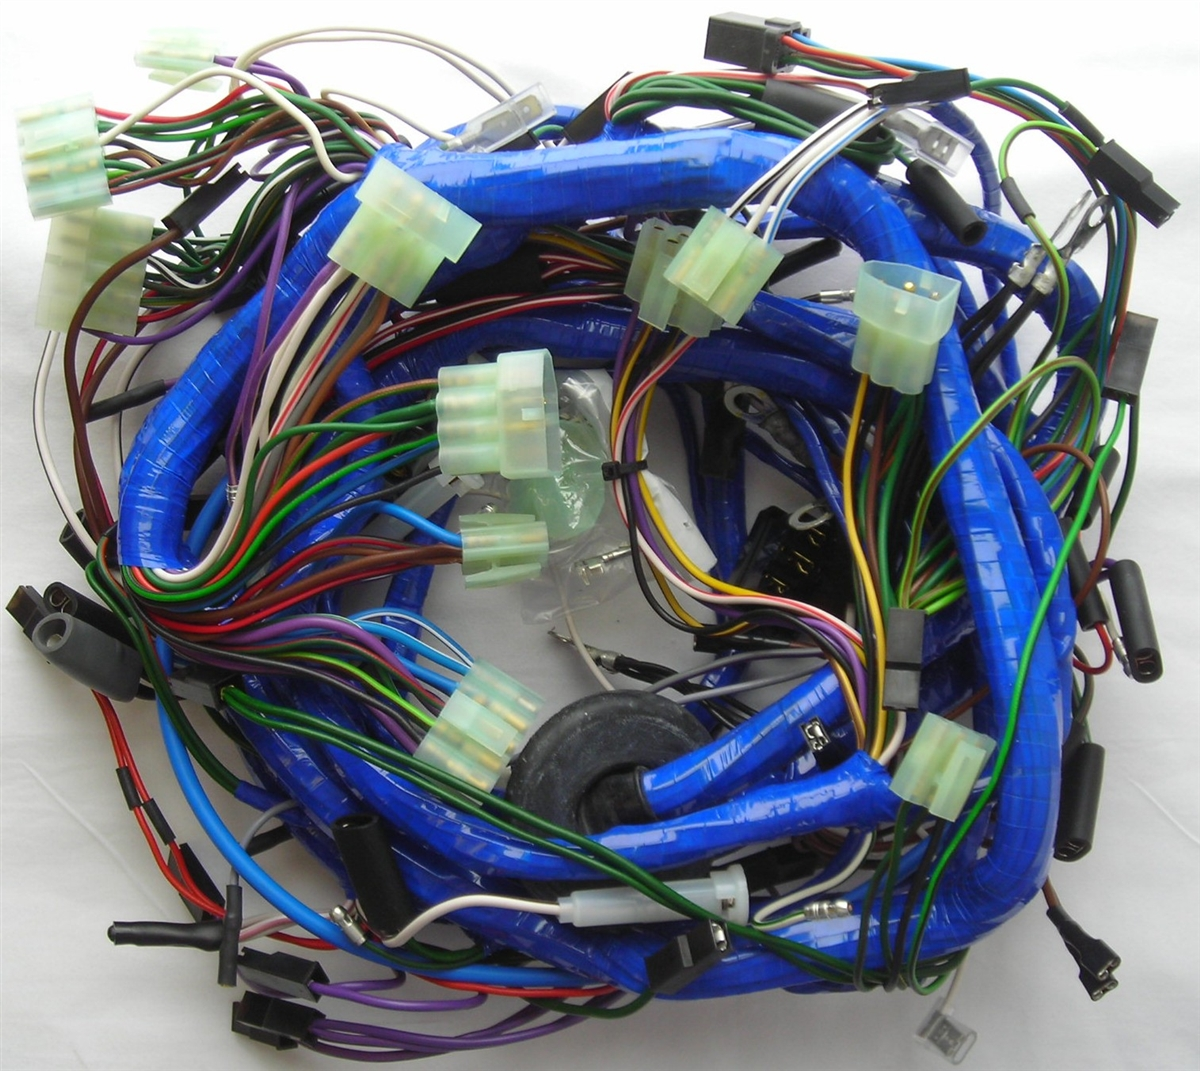 small resolution of mgb 1976 78 main wiring harness 519 1979 mgb wiring harness mgb headlight wiring